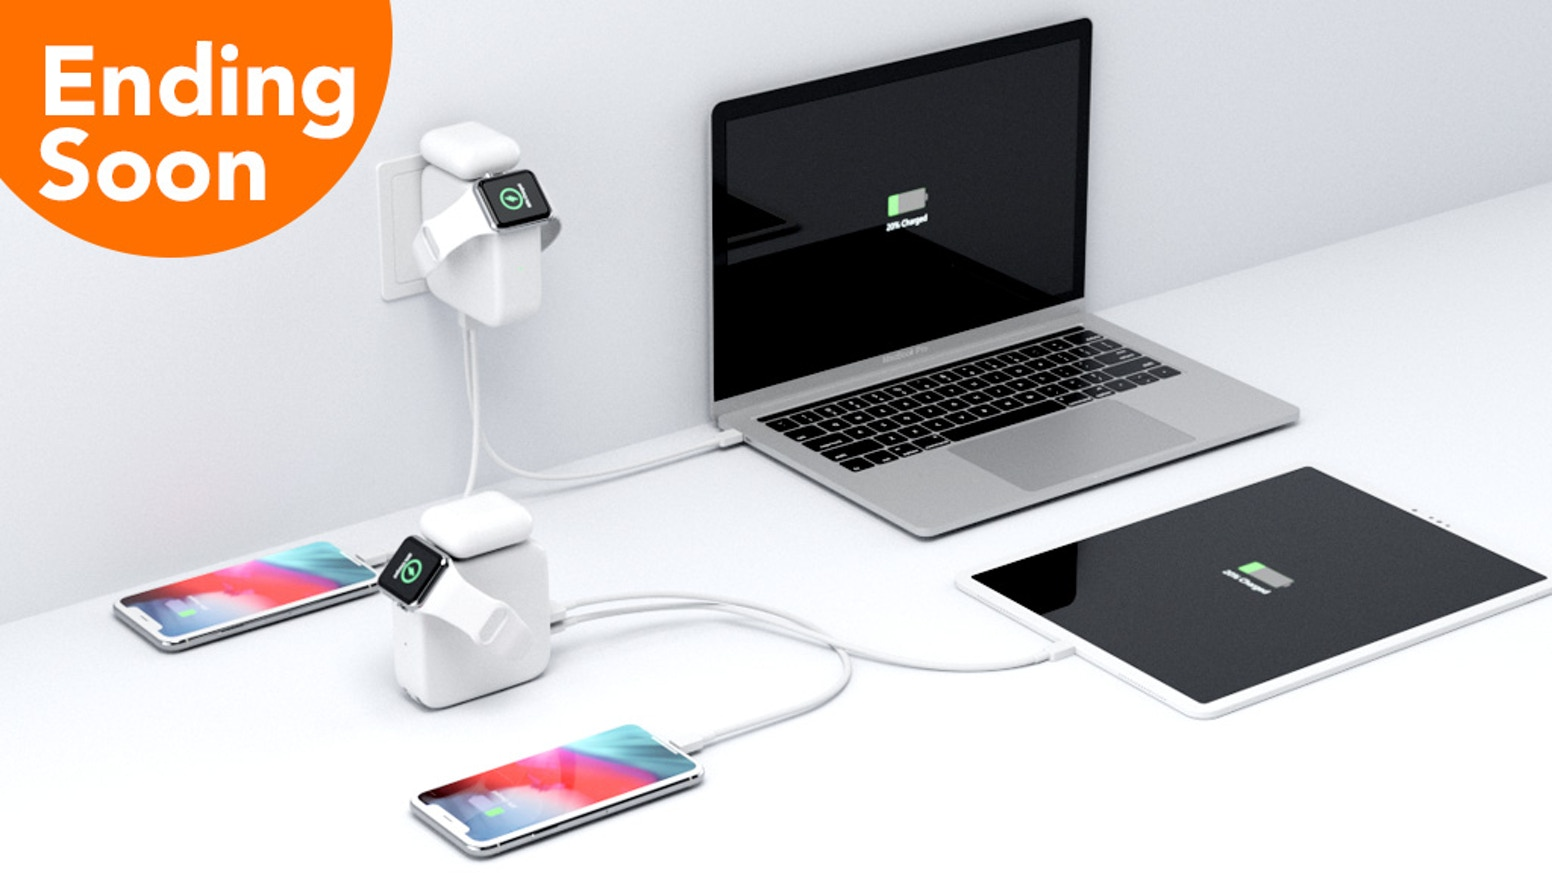 Sweet & Small USB-C Charger & powerbank for your iPhone, Apple Watch, MacBook, AirPods & more wirelessly and wired at the same time